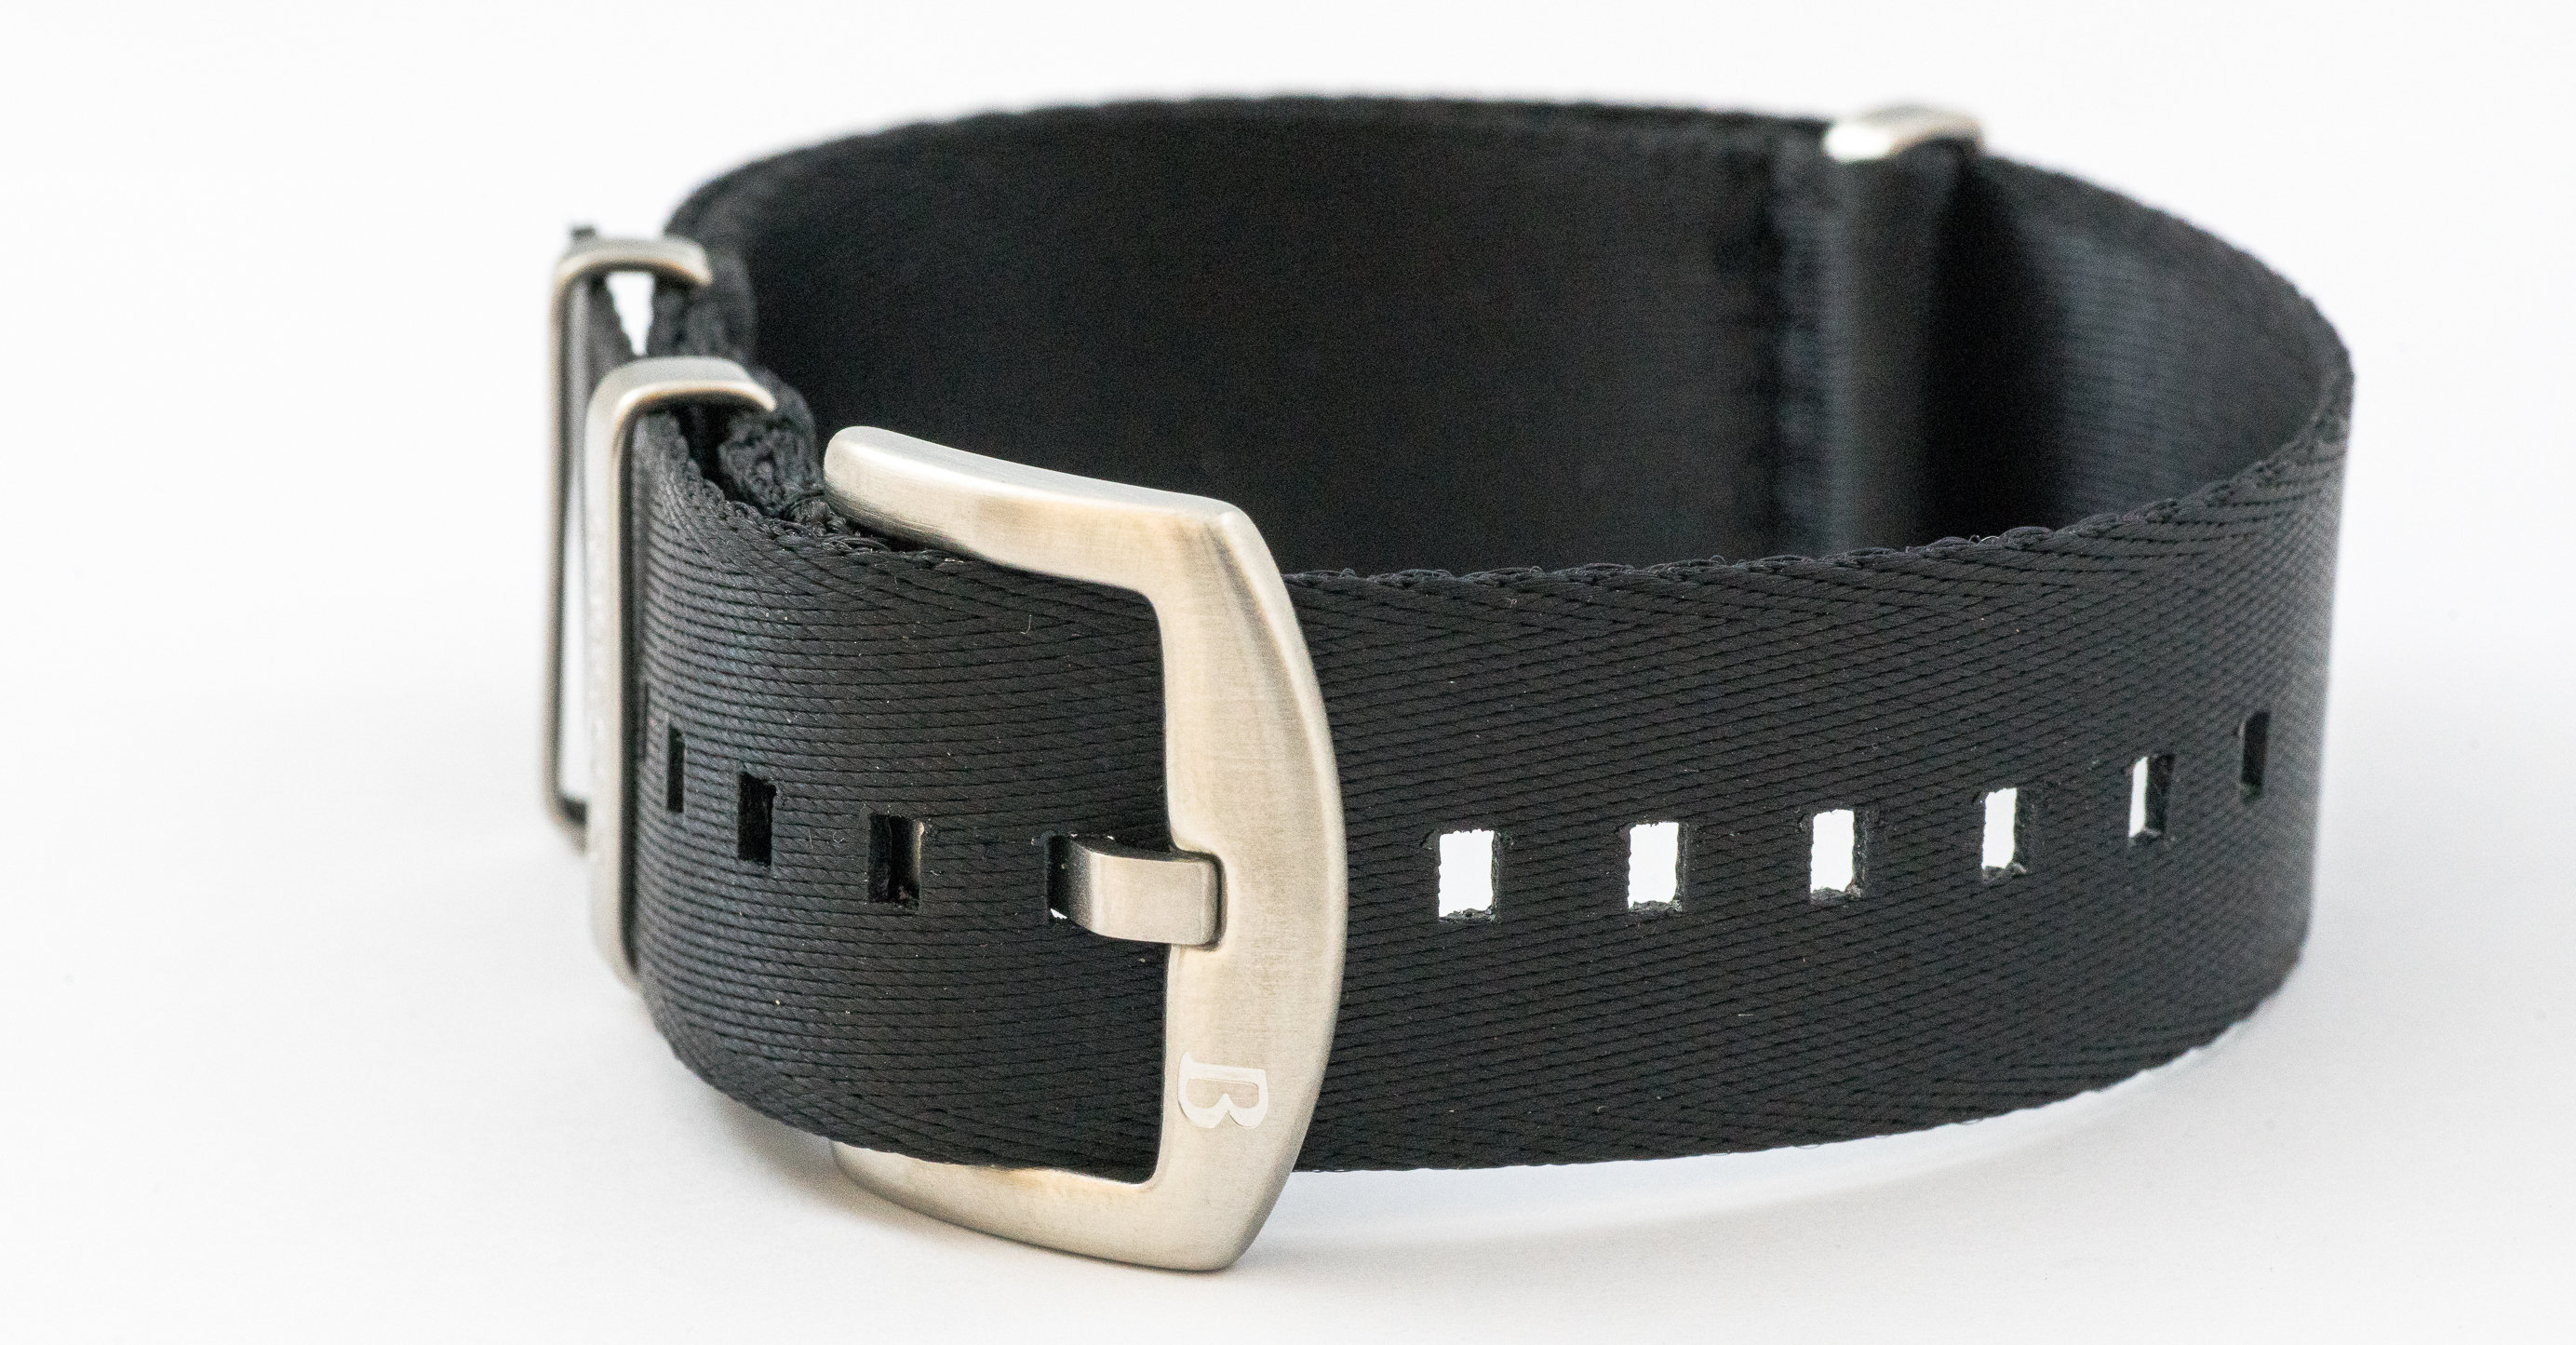 Borealis premium Nato style seatbelt 1.2mm nylon weave strap 20mm size black BSBNSBLACK20MM